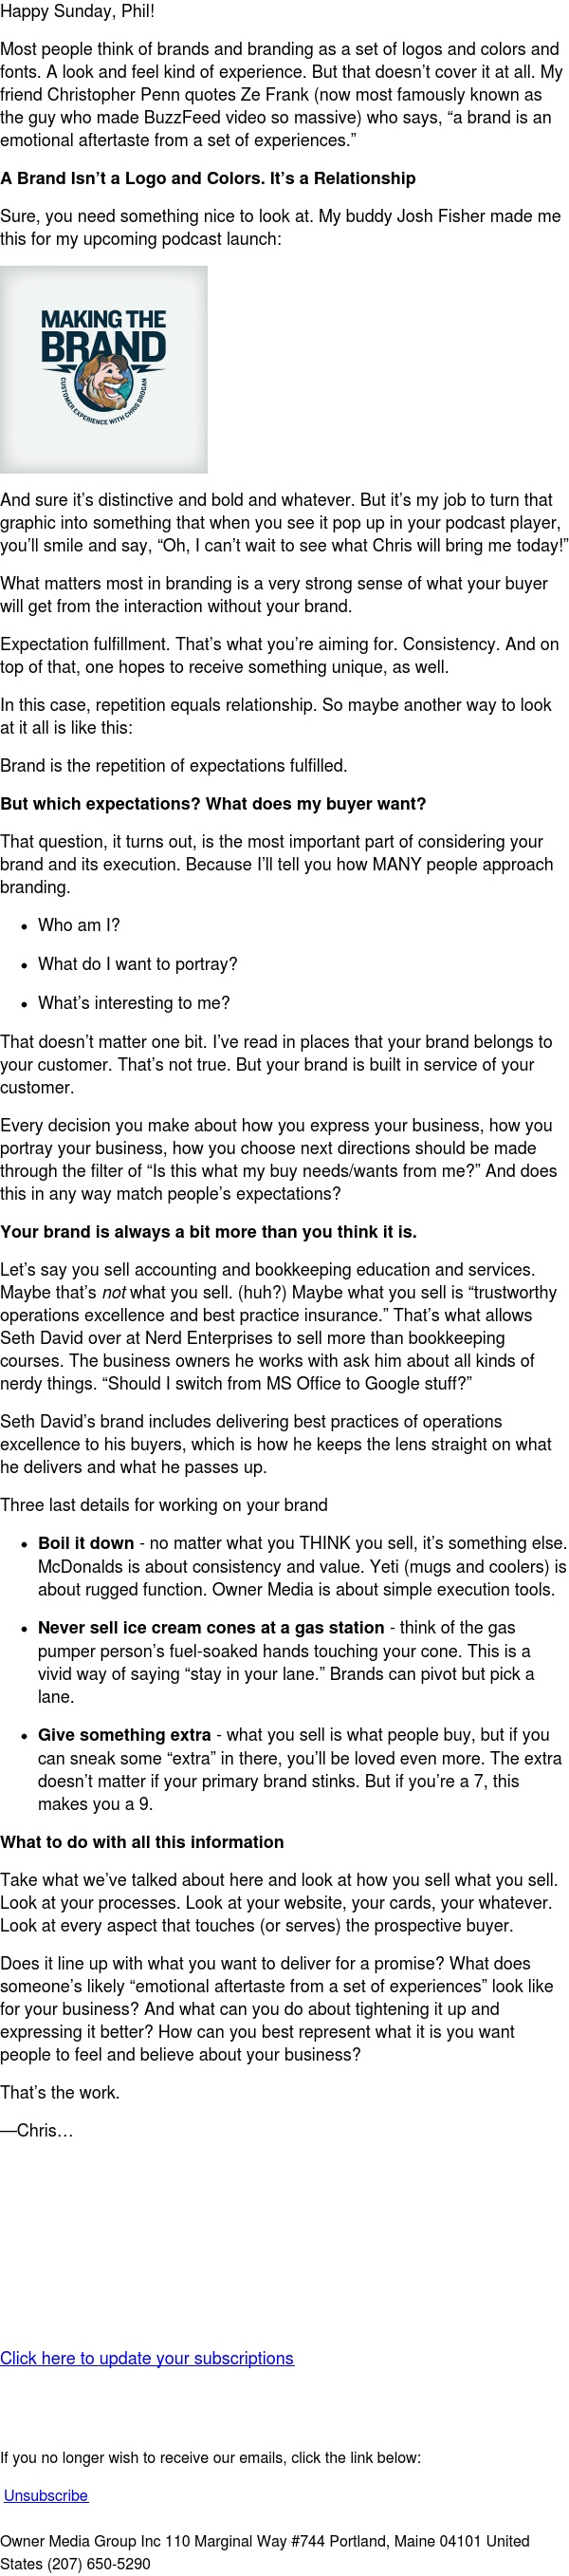 What Your Brand Isn't and What it Is